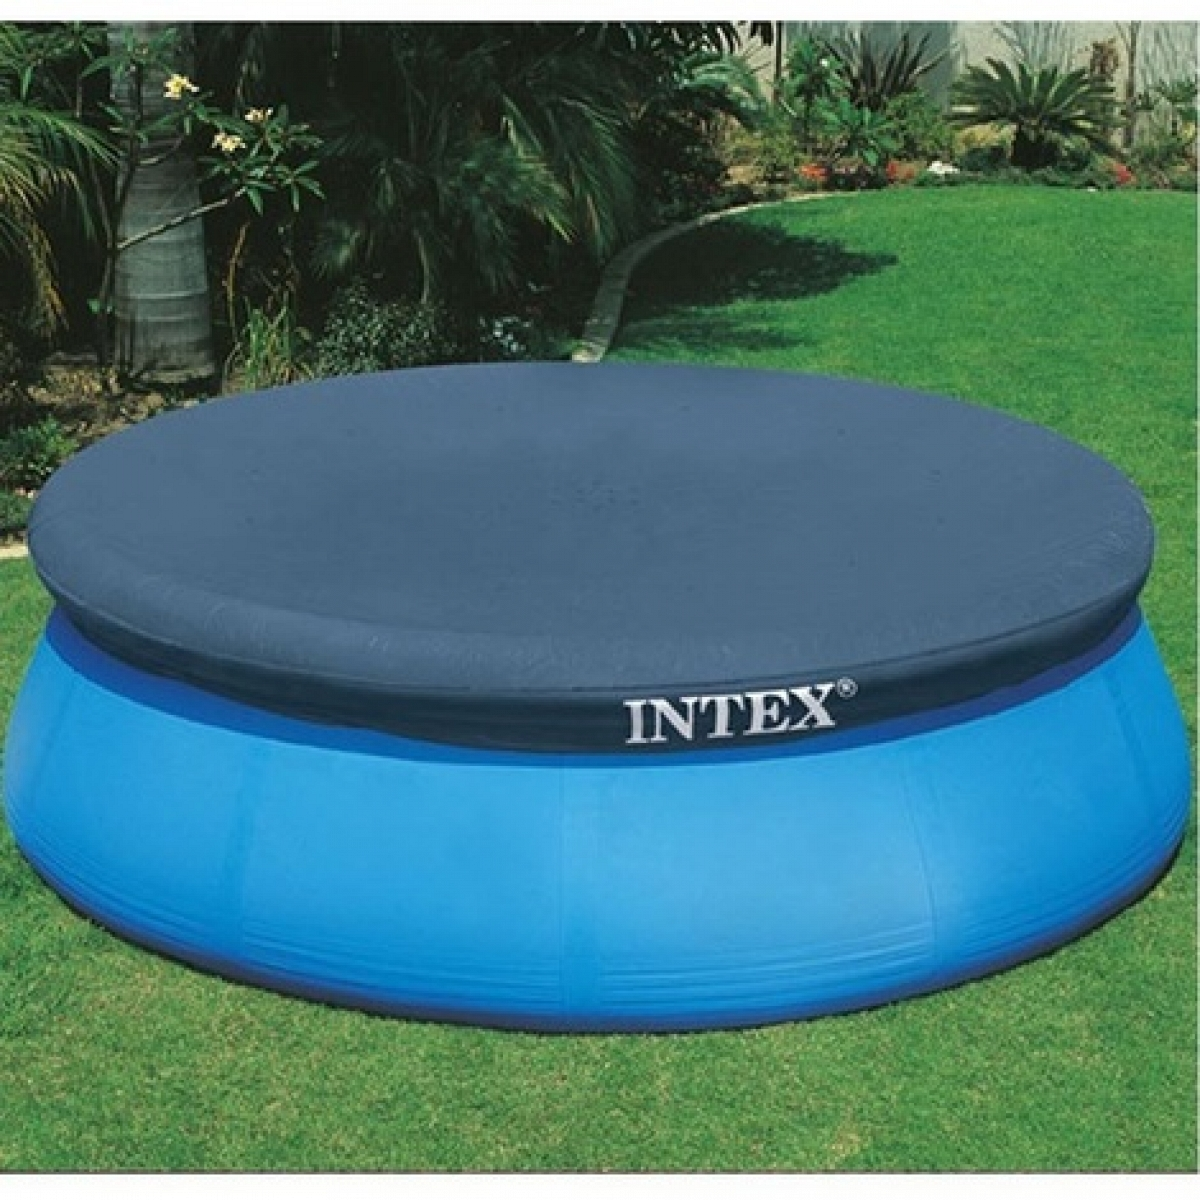 copripiscina intex easy set f r rundbecken. Black Bedroom Furniture Sets. Home Design Ideas